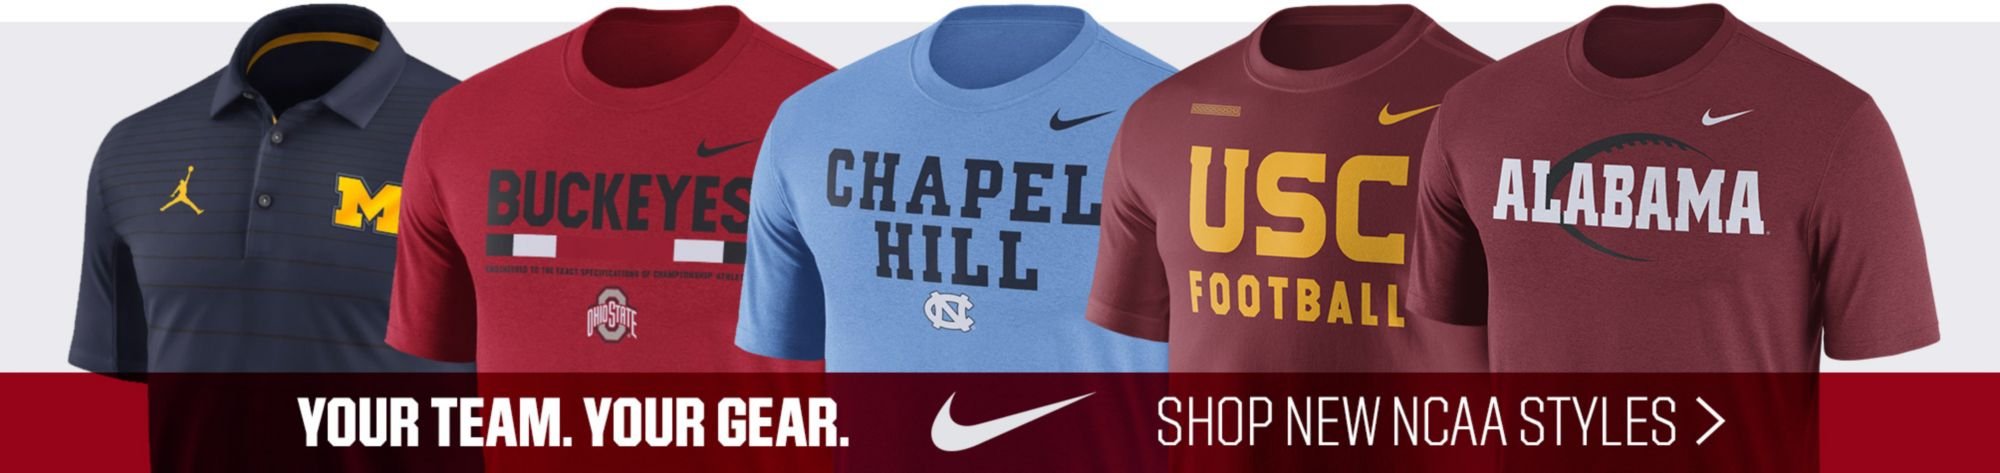 New NCAA Nike Gear